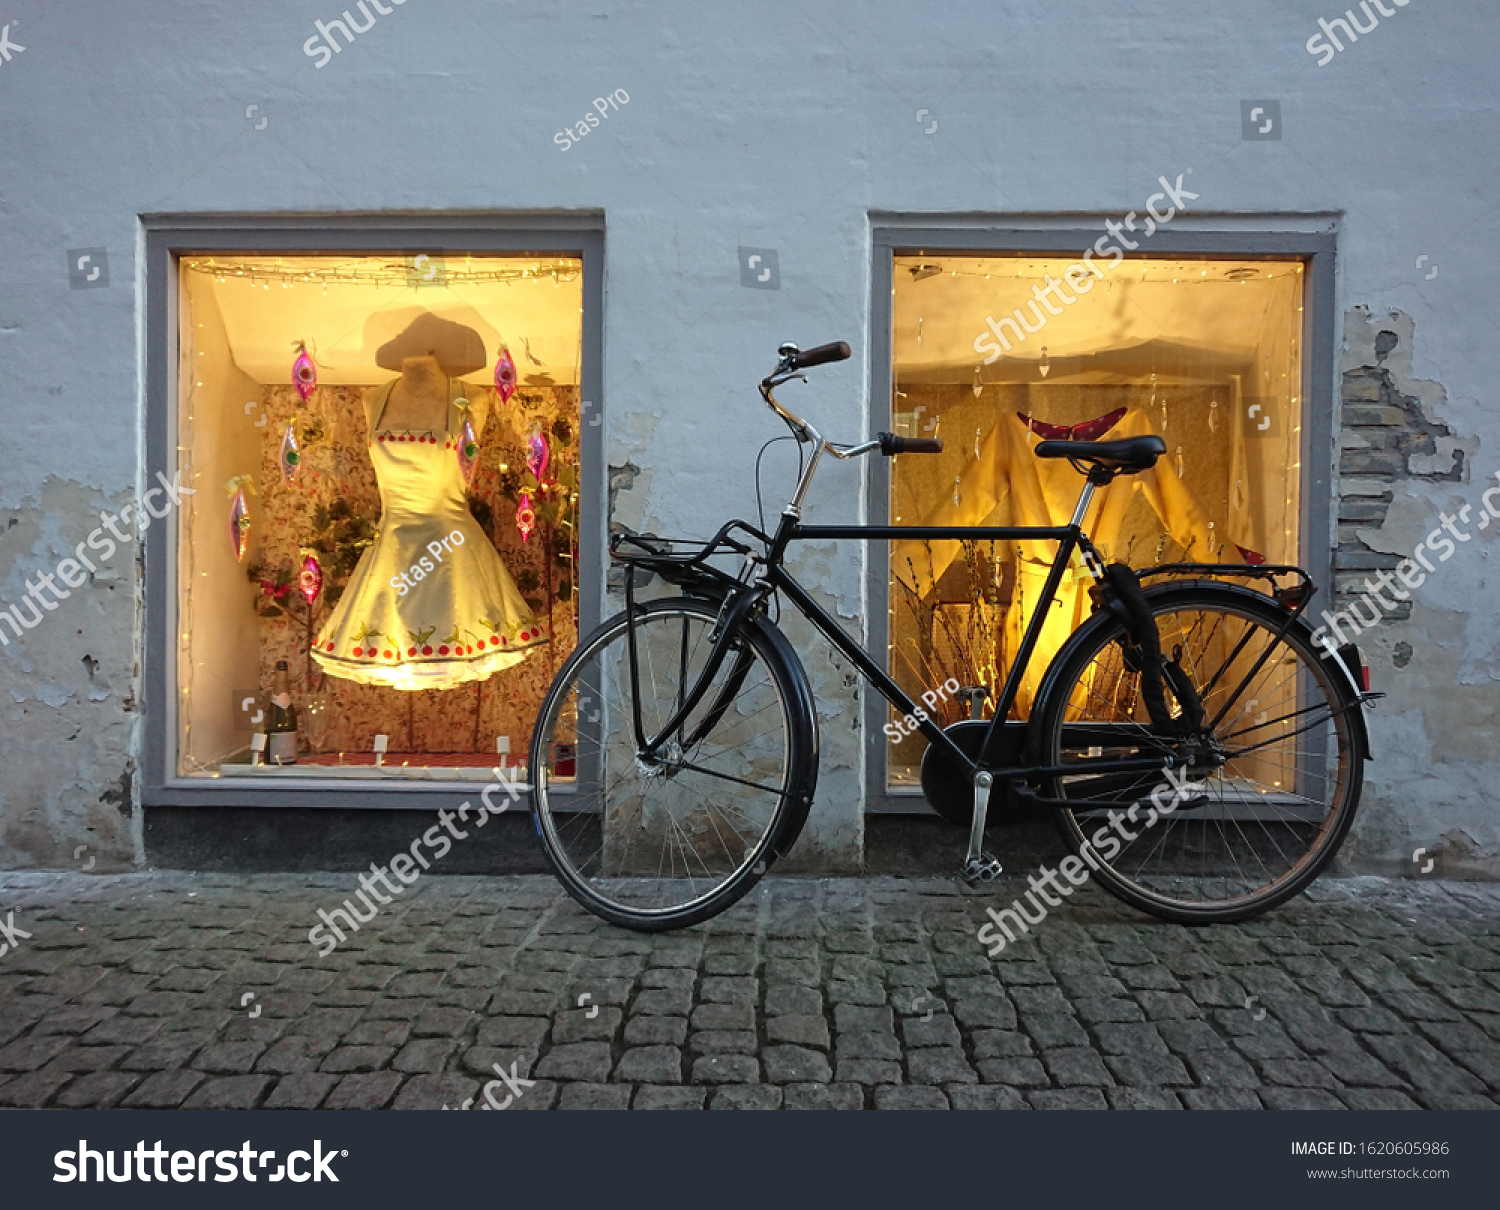 stock-photo-black-bicycle-parked-near-th